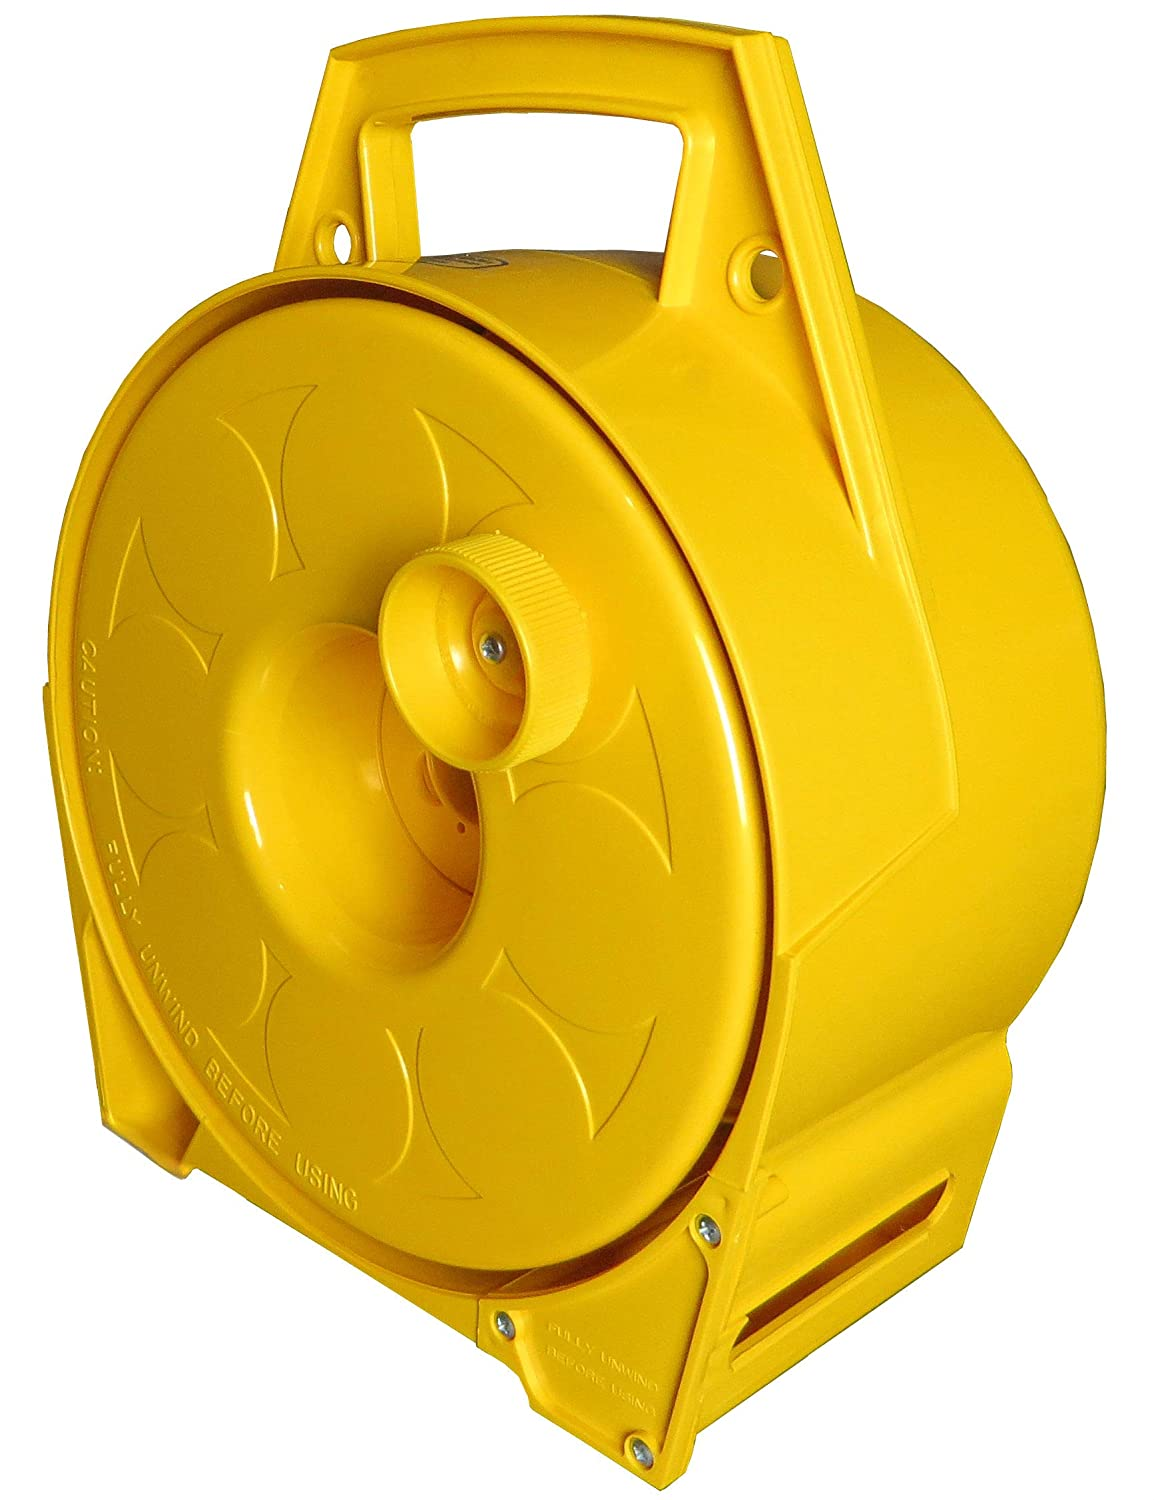 Holds up to 125 ft of Cord The Original Sidewinder Reel SW-II Cord Reel